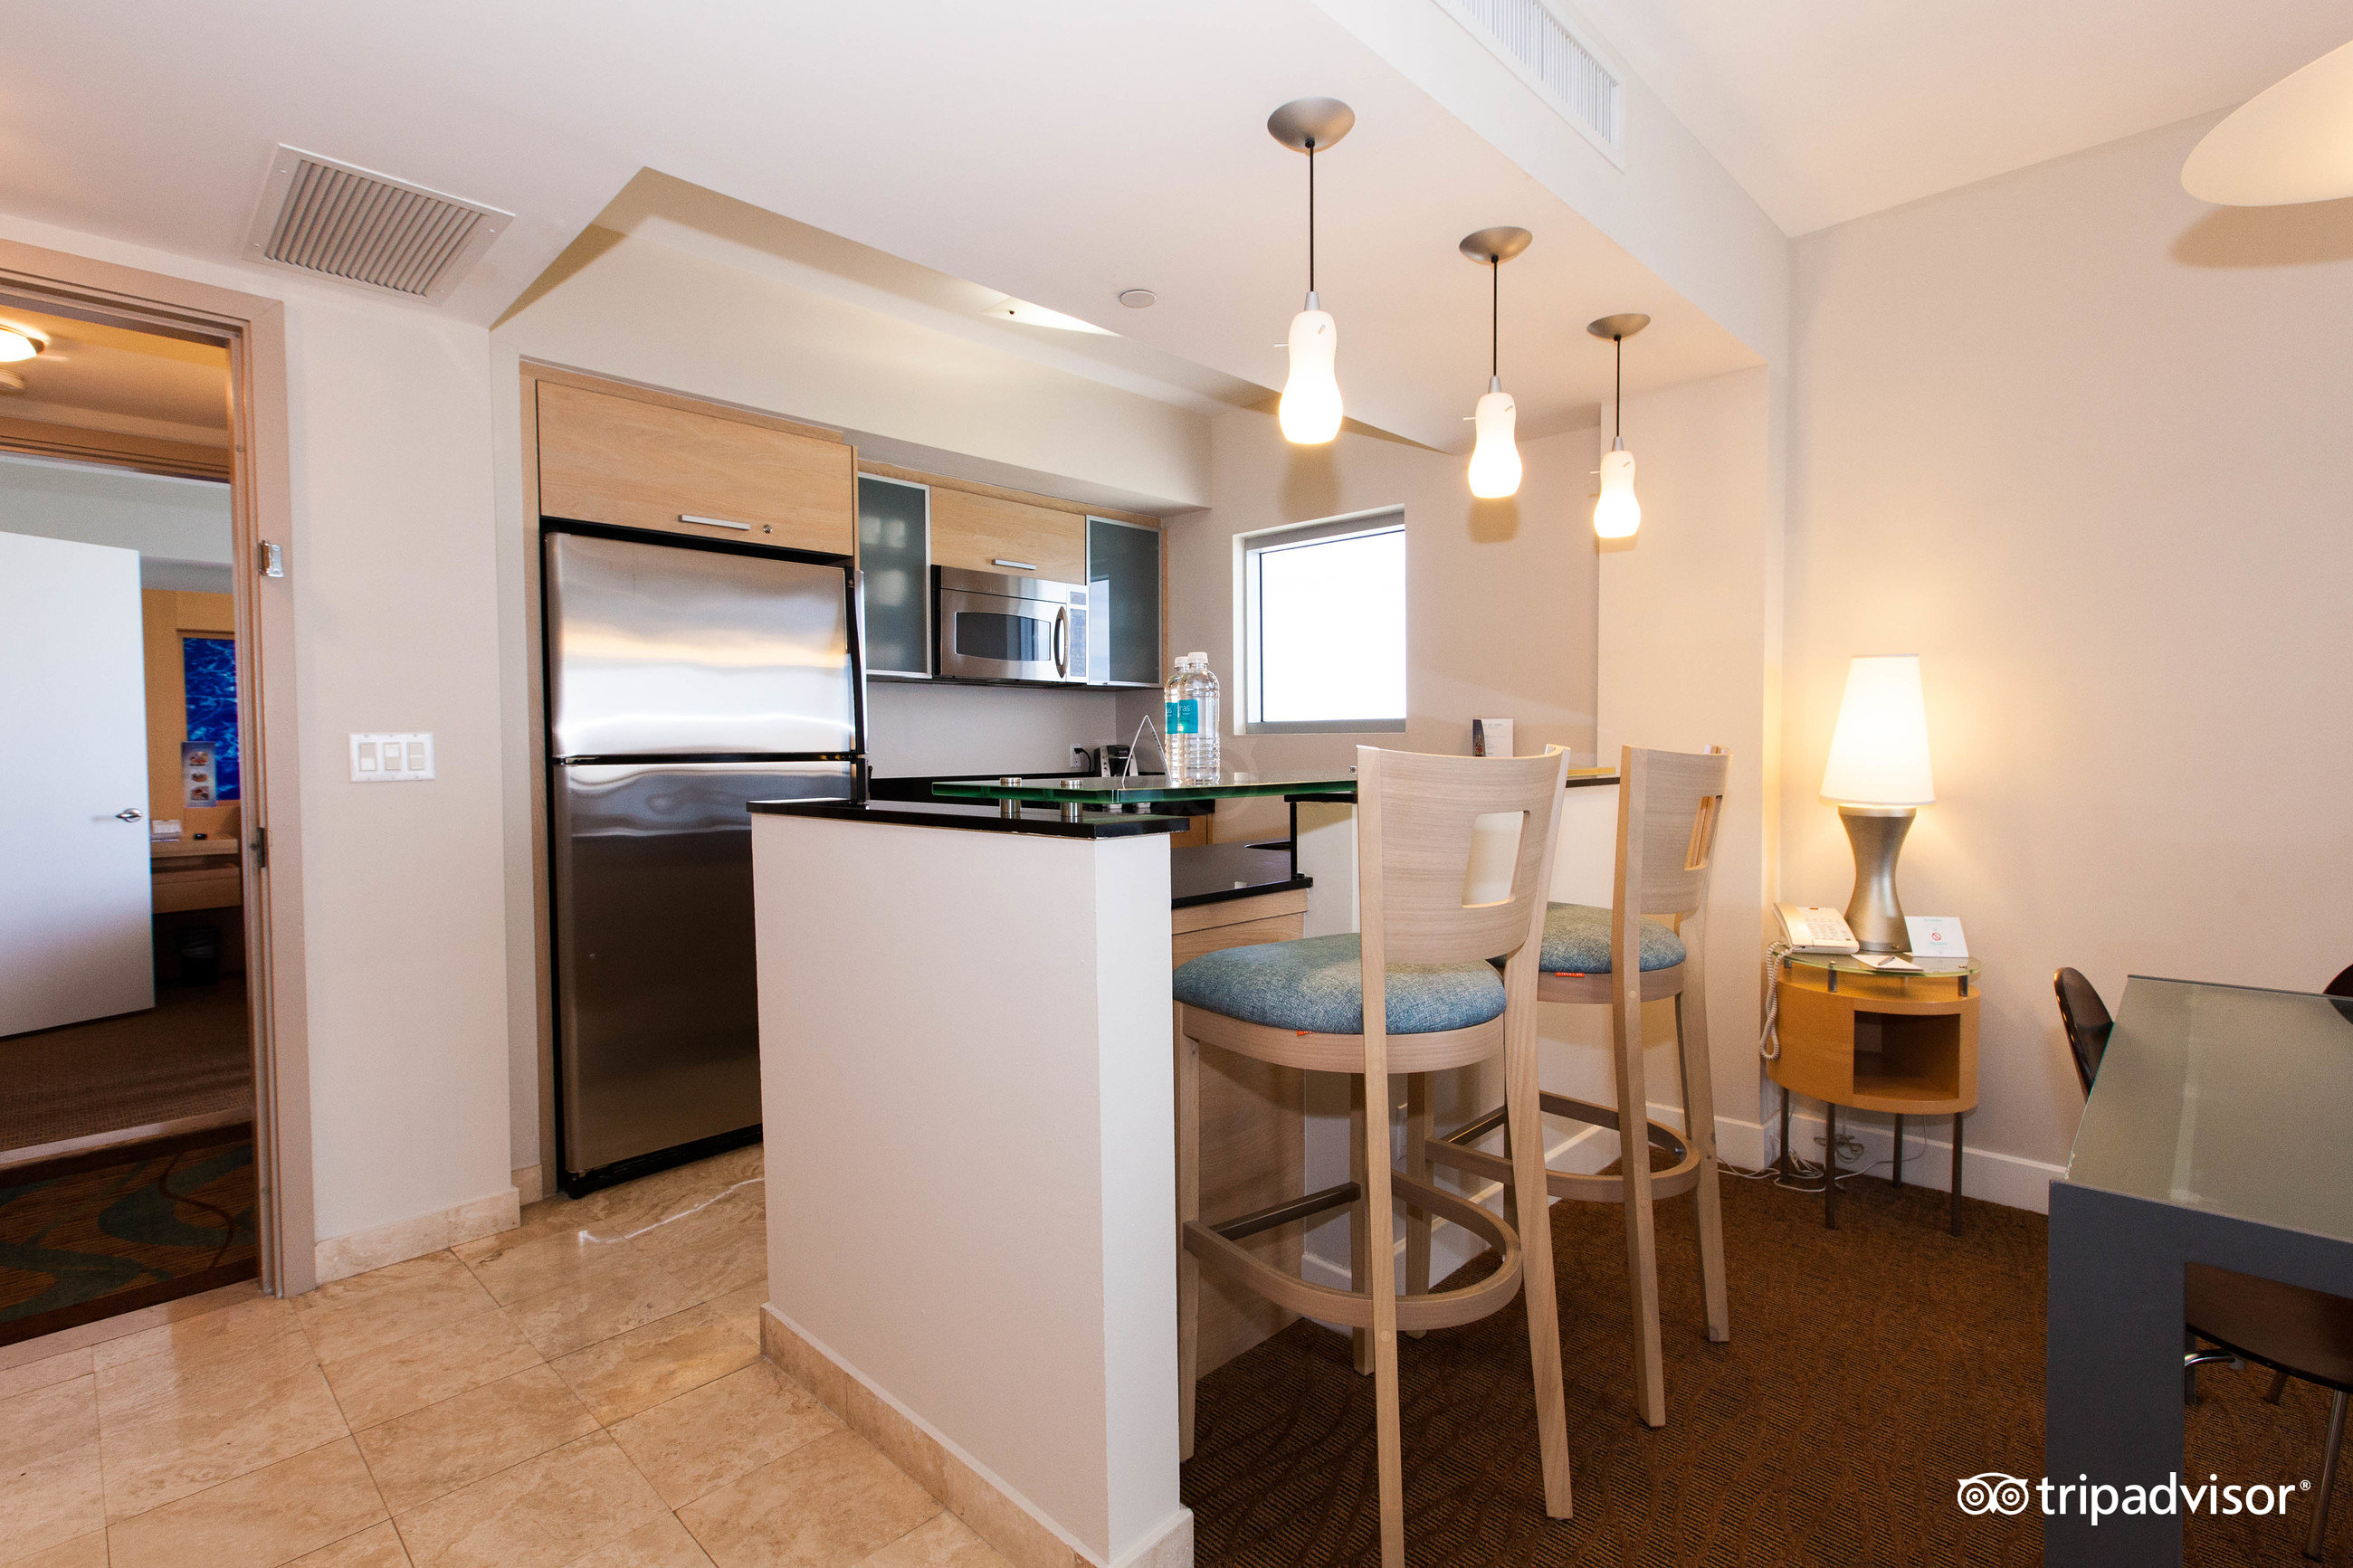 2 bedroom suites in florida%0A We search      sites to find the best hotel prices